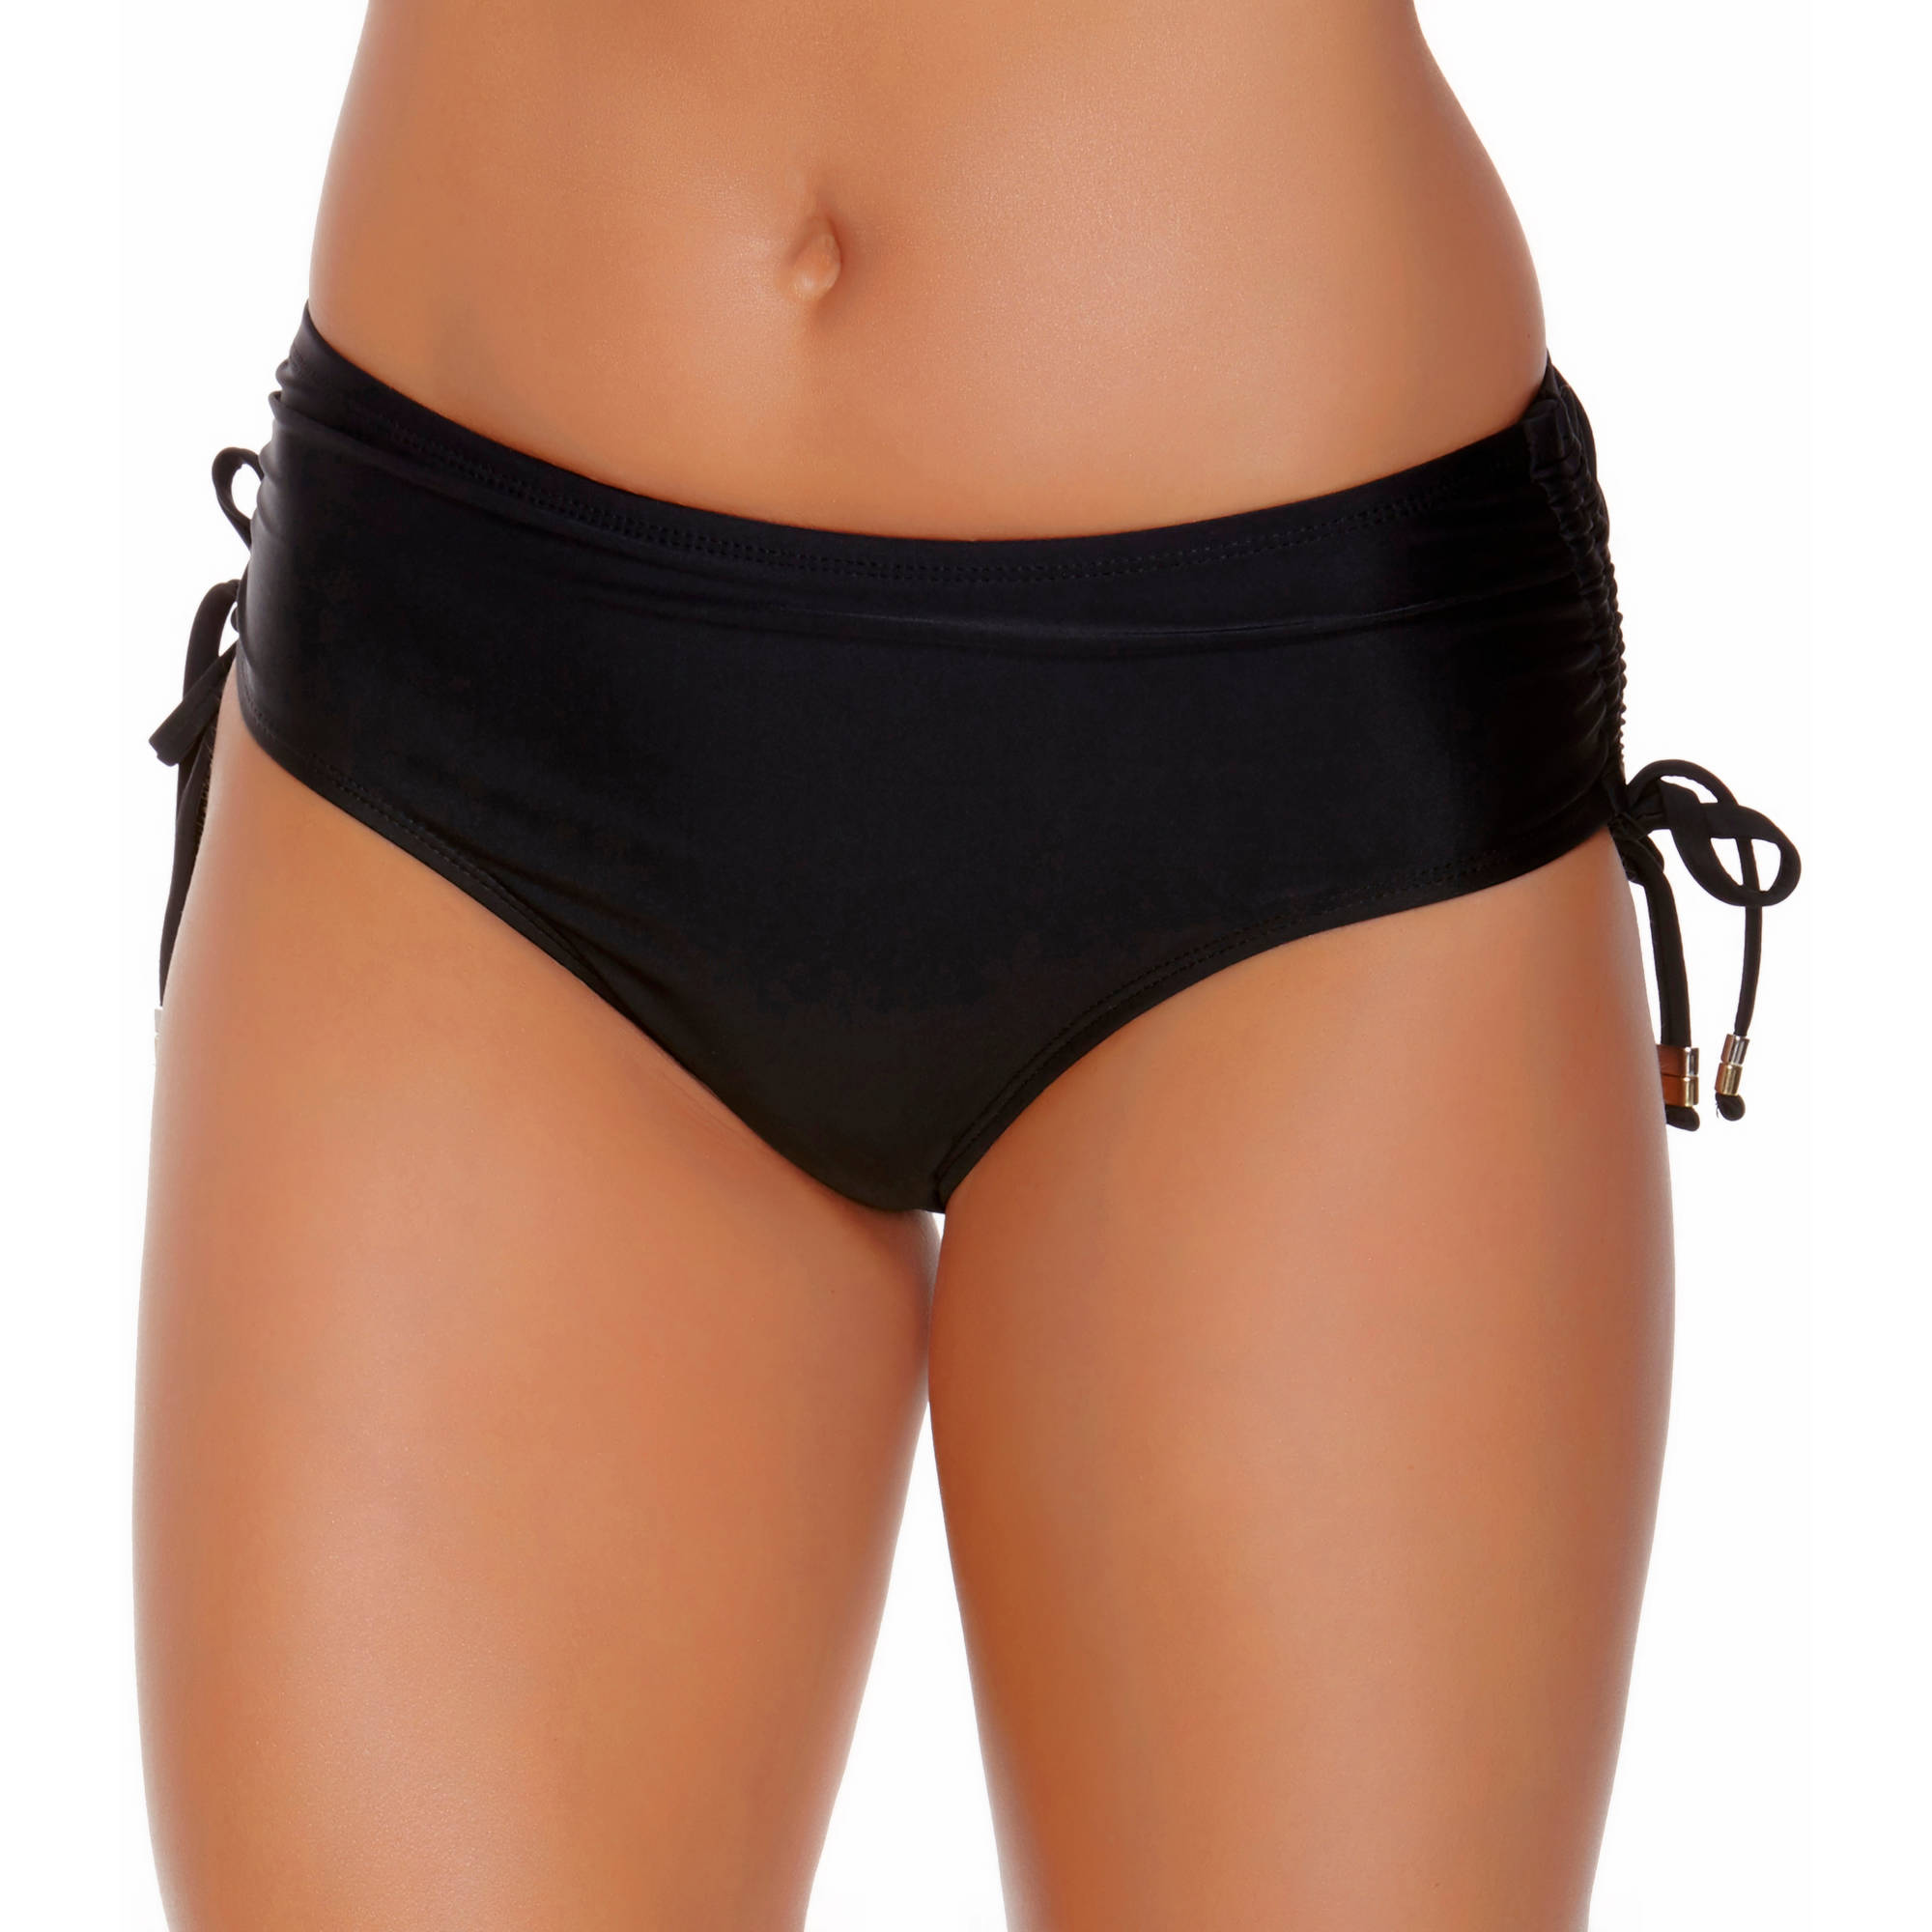 Collections by Catalina Women's Full Coverage Swimsuit Bottom With Adjustable Ties